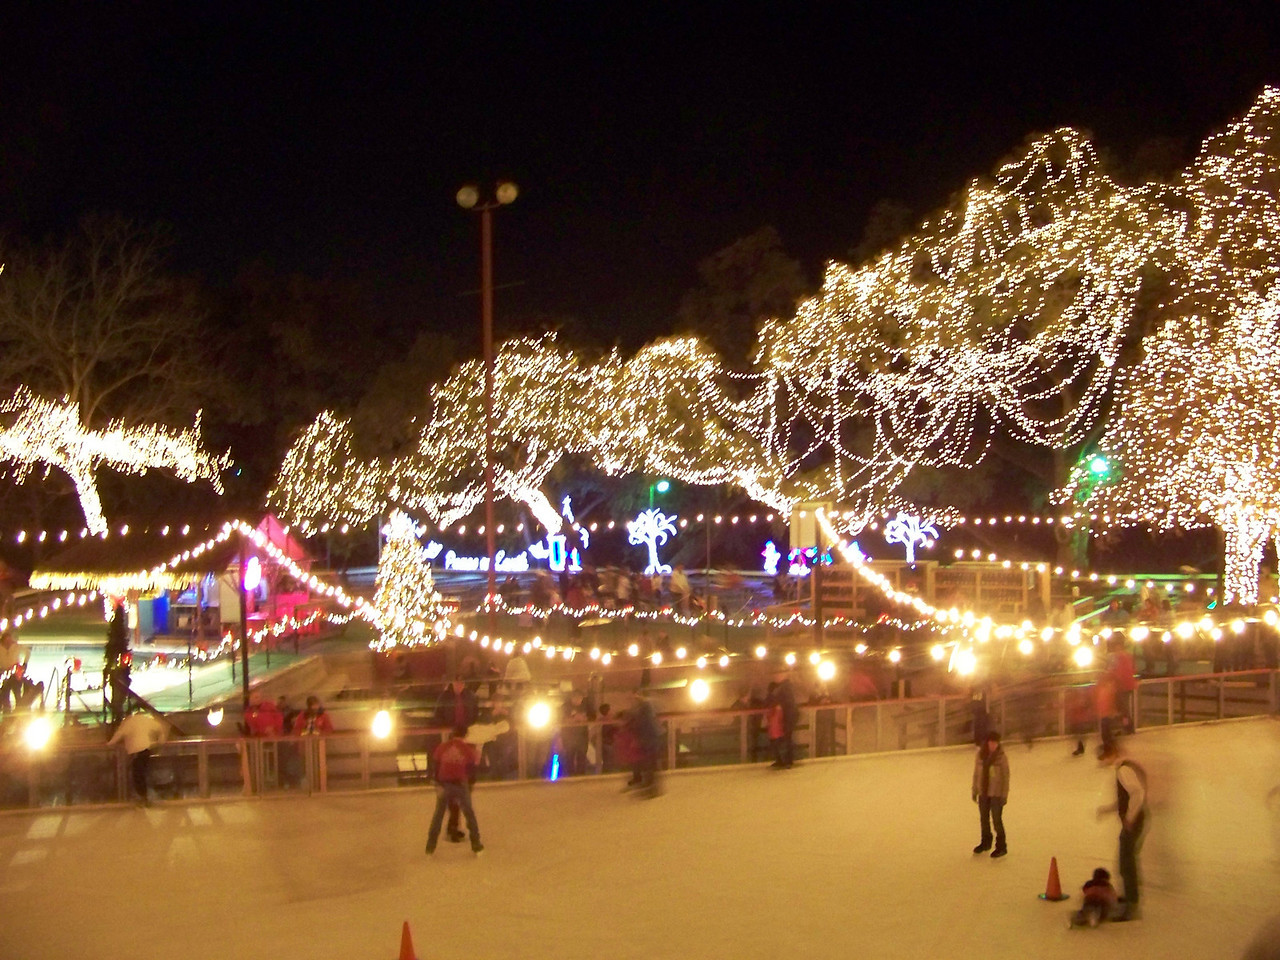 They had a (fake ice) skating rink set up, but you had to pay extra and neither of us felt like doing that.<br /> [Schlitterbahn's Hill Country Christmas 2009]